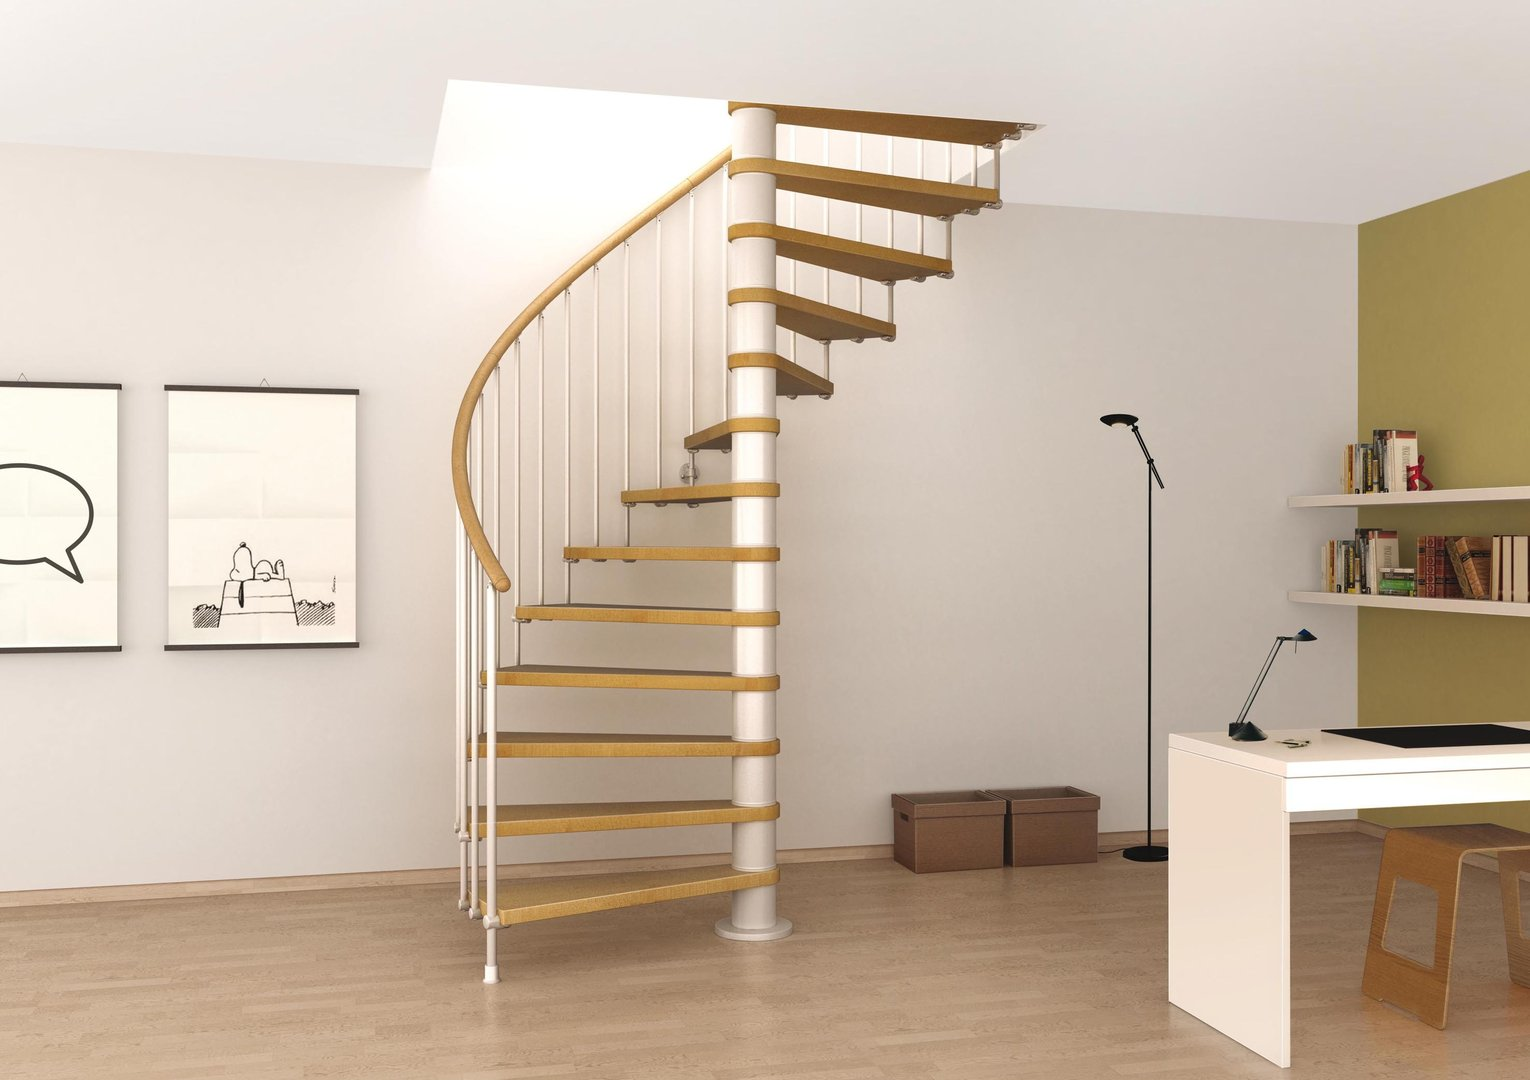 Glass spiral staircase innovative for indoor my staircase gallery - Staircase designs for small spaces set ...